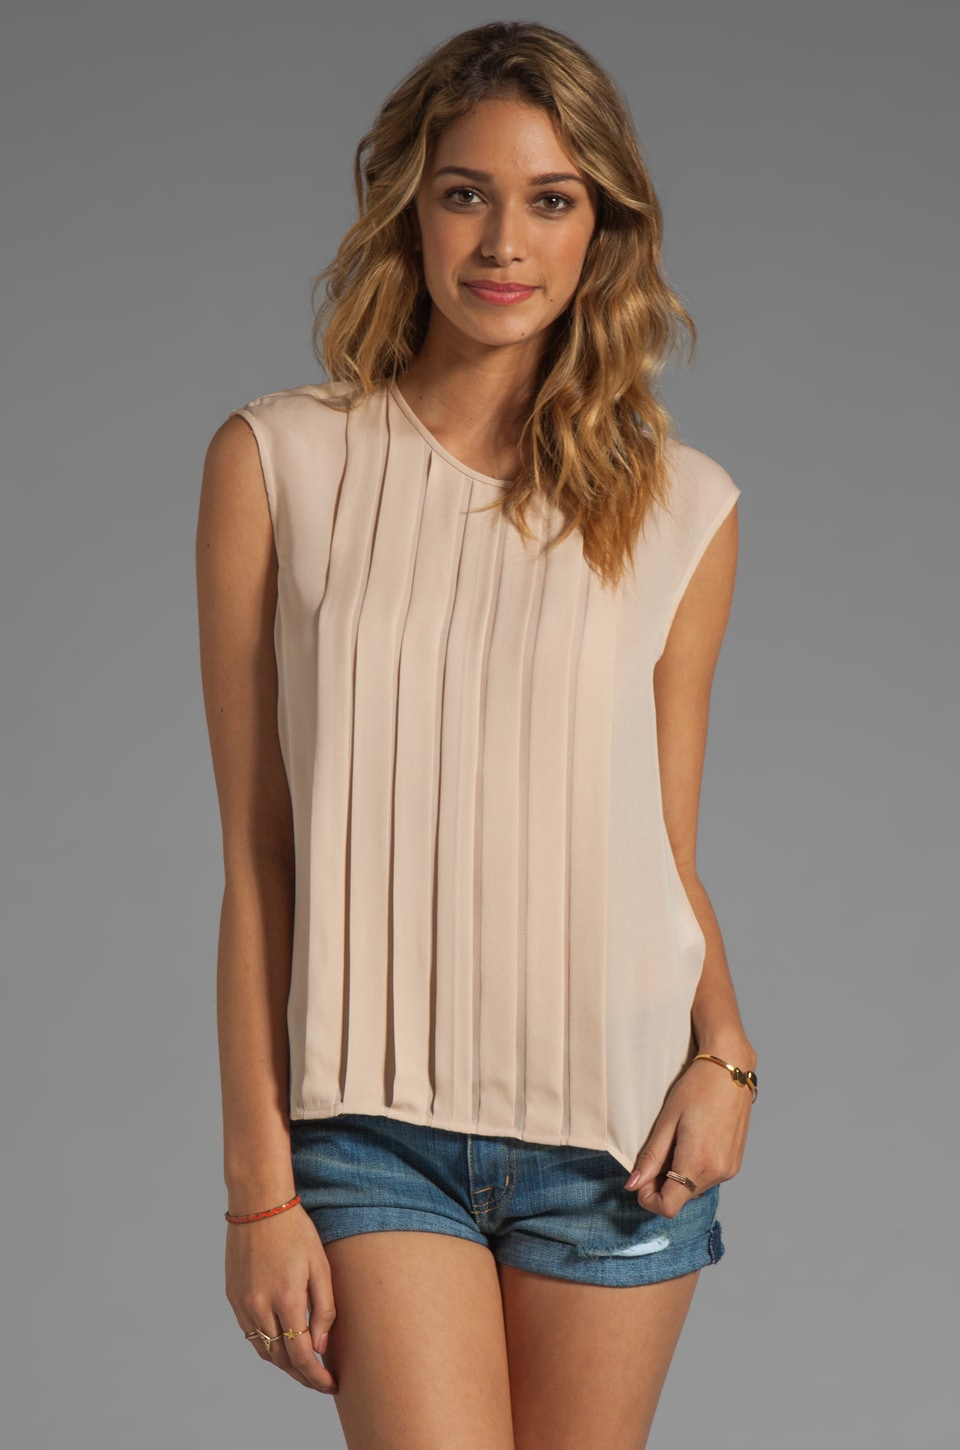 Joie Averlia Silk Top in Dusty Pink Sand